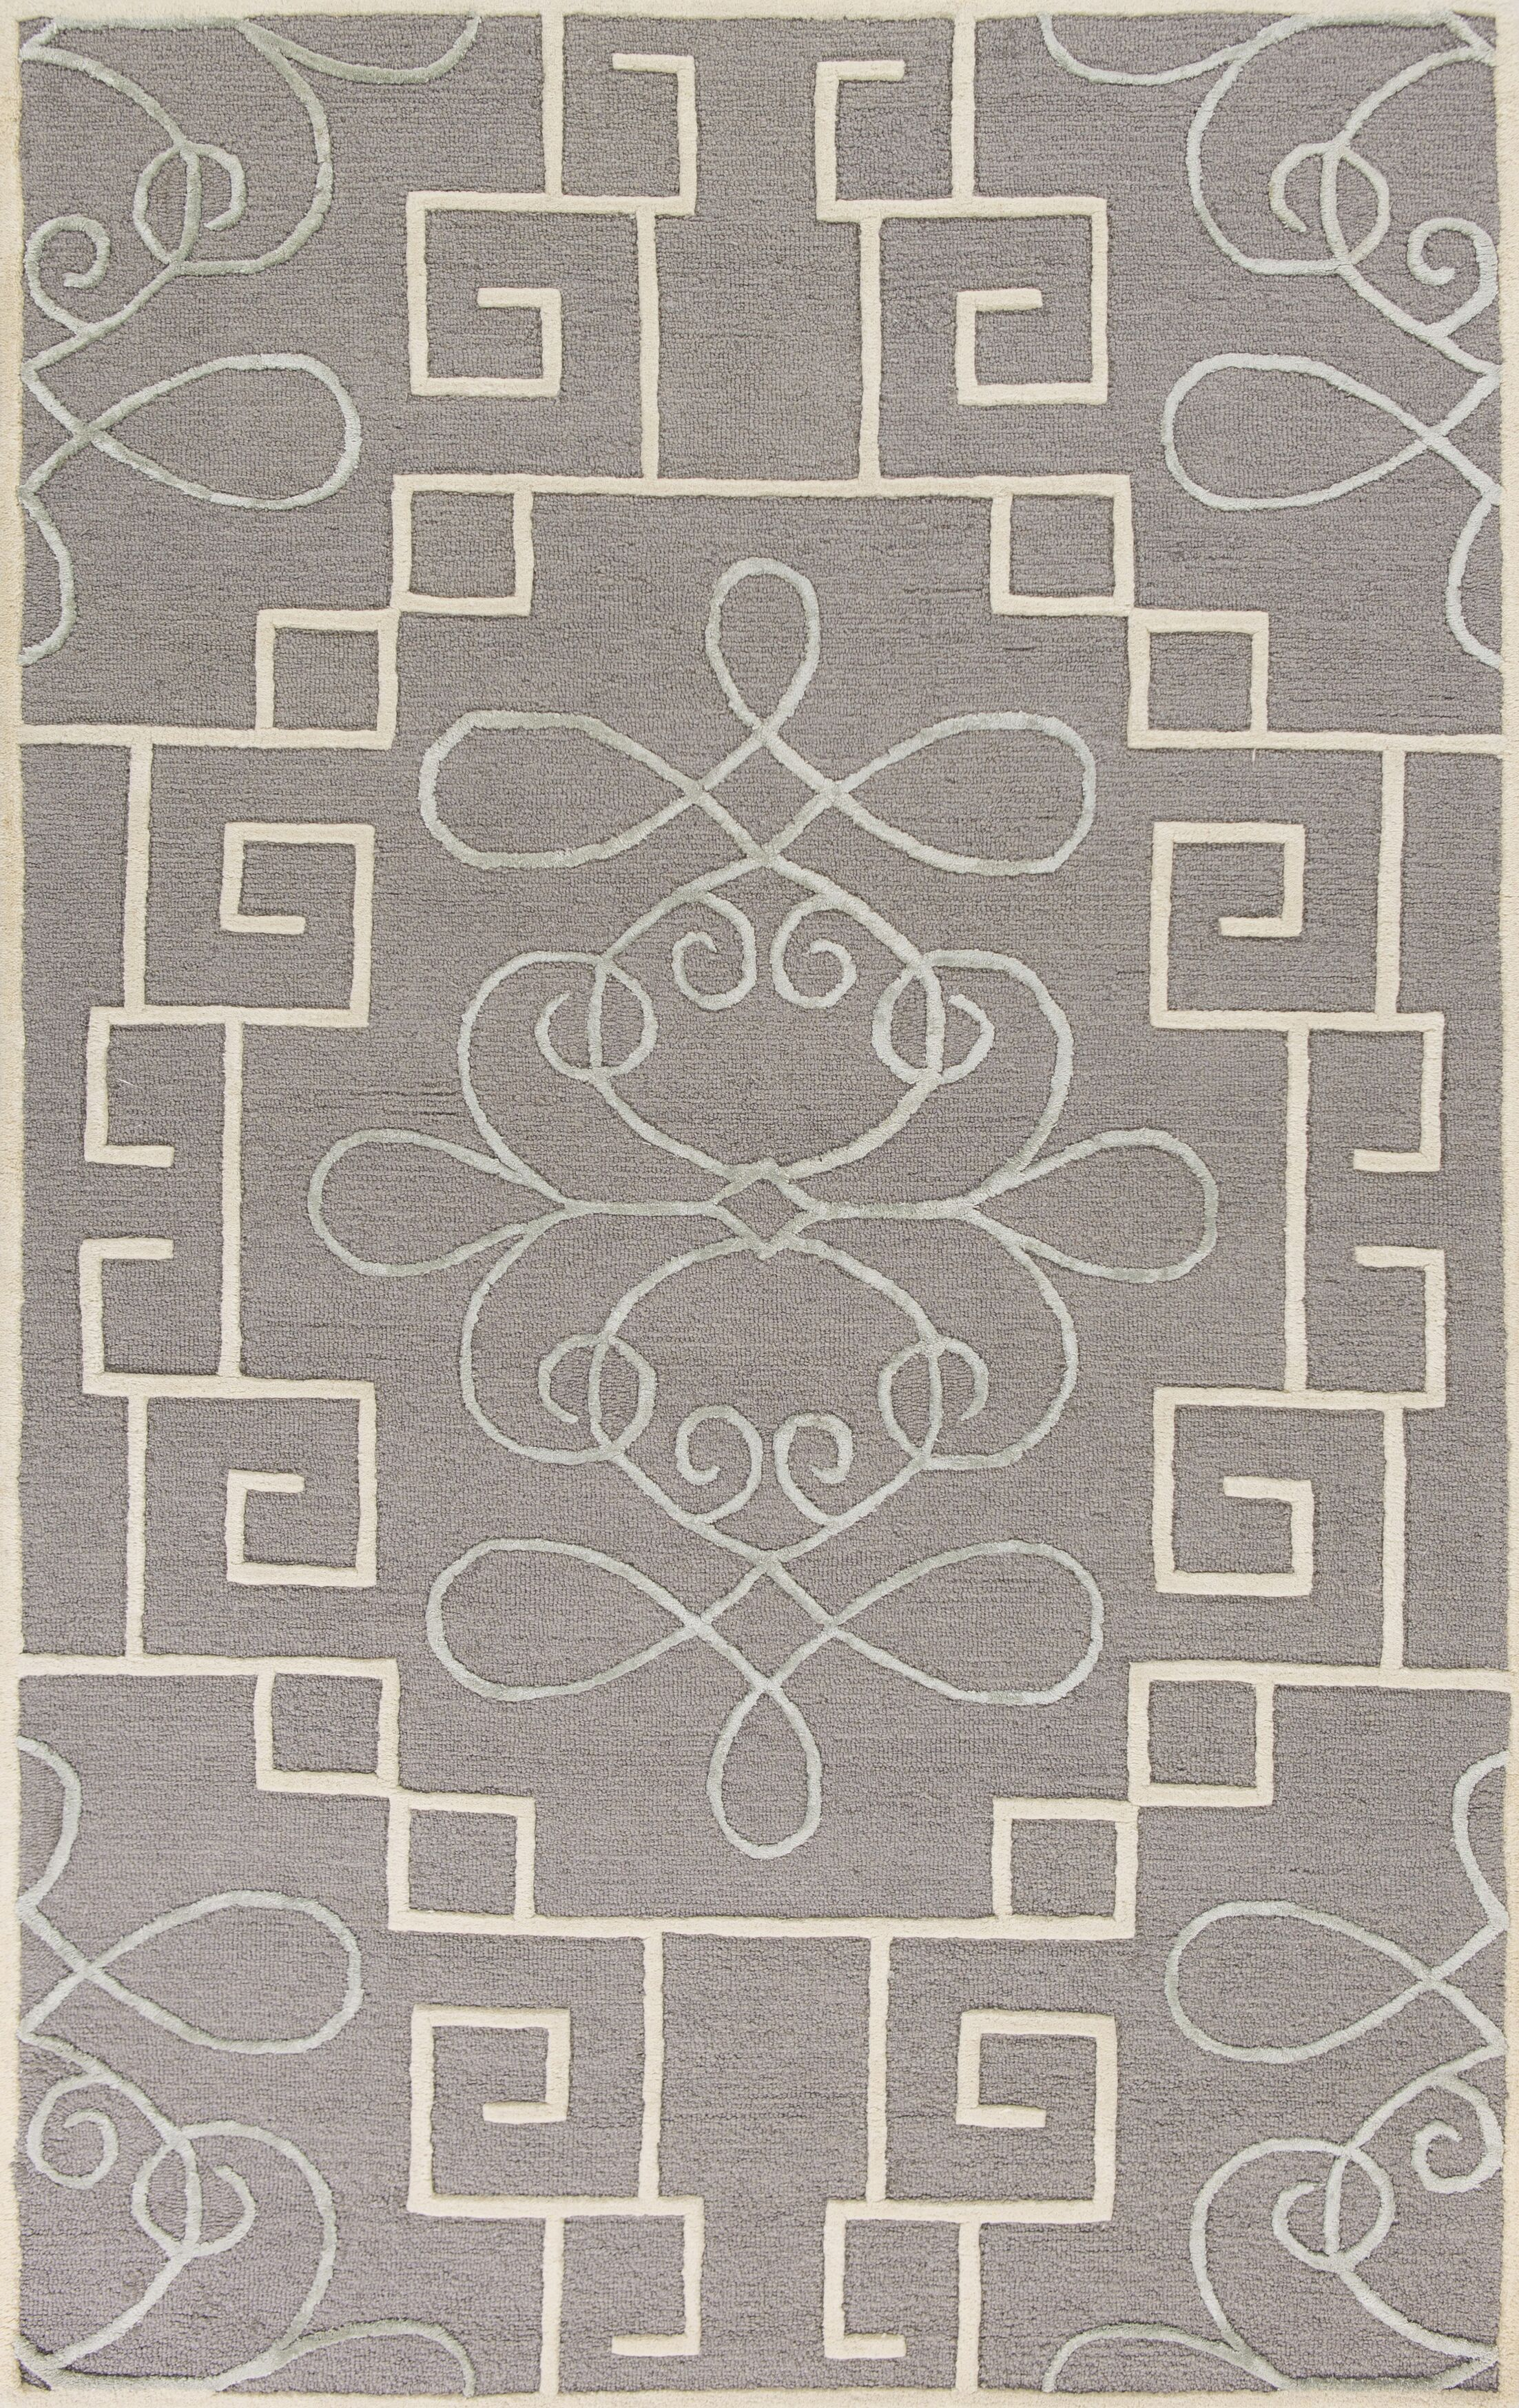 Haggerty Hand-Tufted Gray/Cream Area Rug Rug Size: Rectangle 3'3